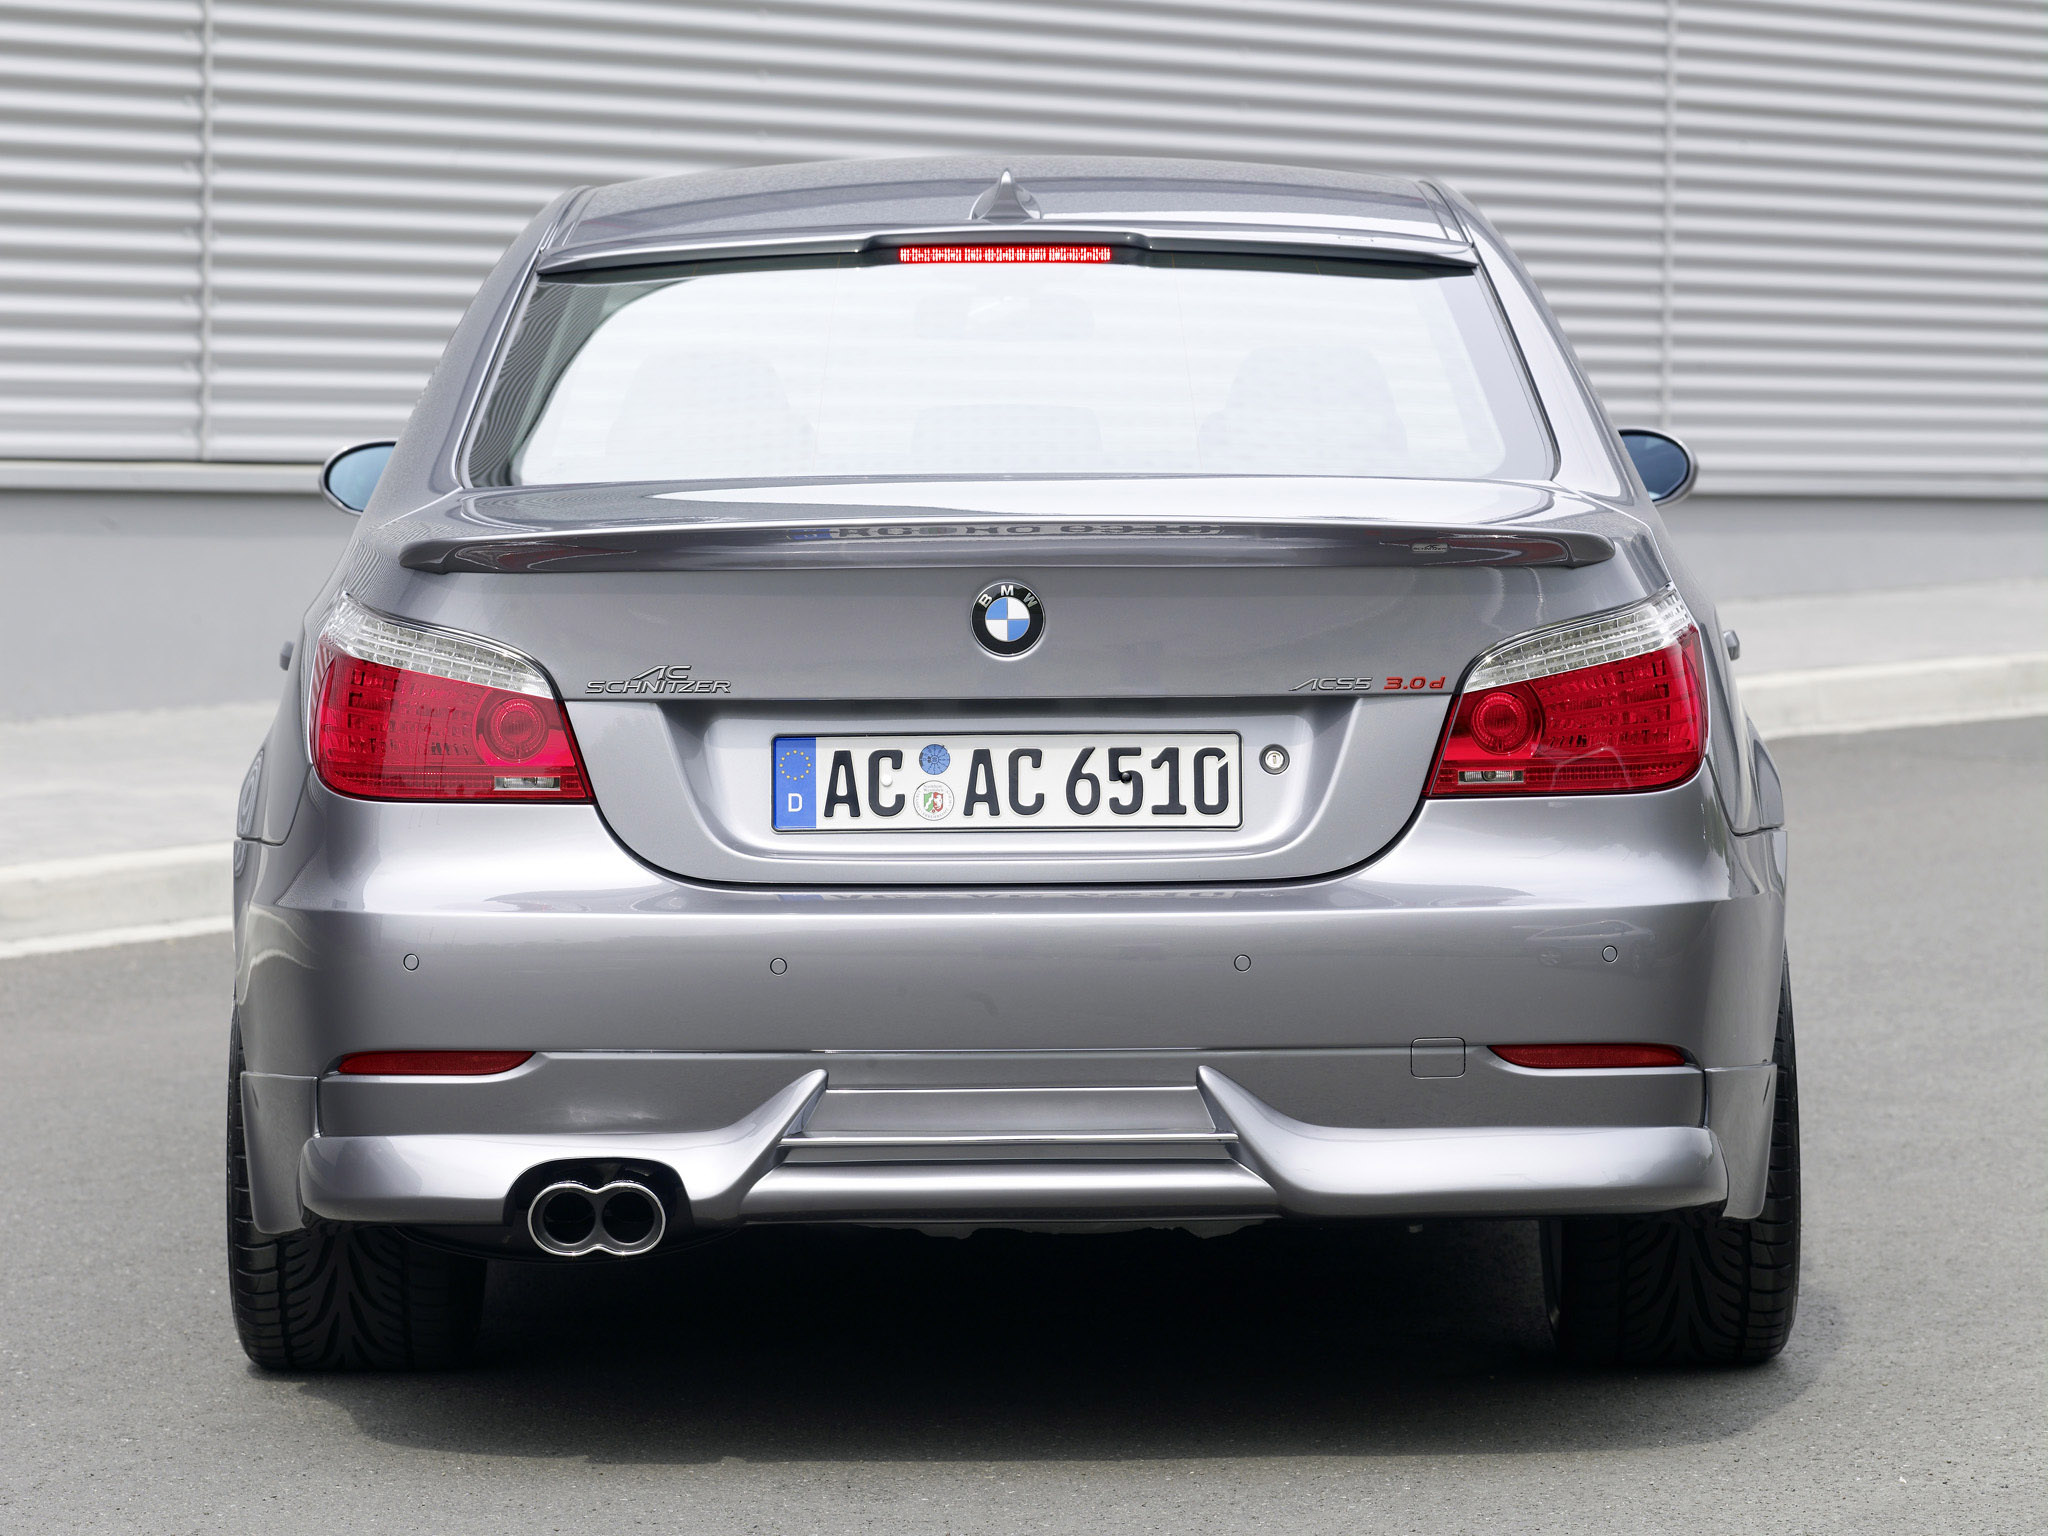 ac schnitzer bmw 5 series acs5 e60 2008 ac schnitzer bmw 5 series acs5 e60 2008 photo 09 car. Black Bedroom Furniture Sets. Home Design Ideas